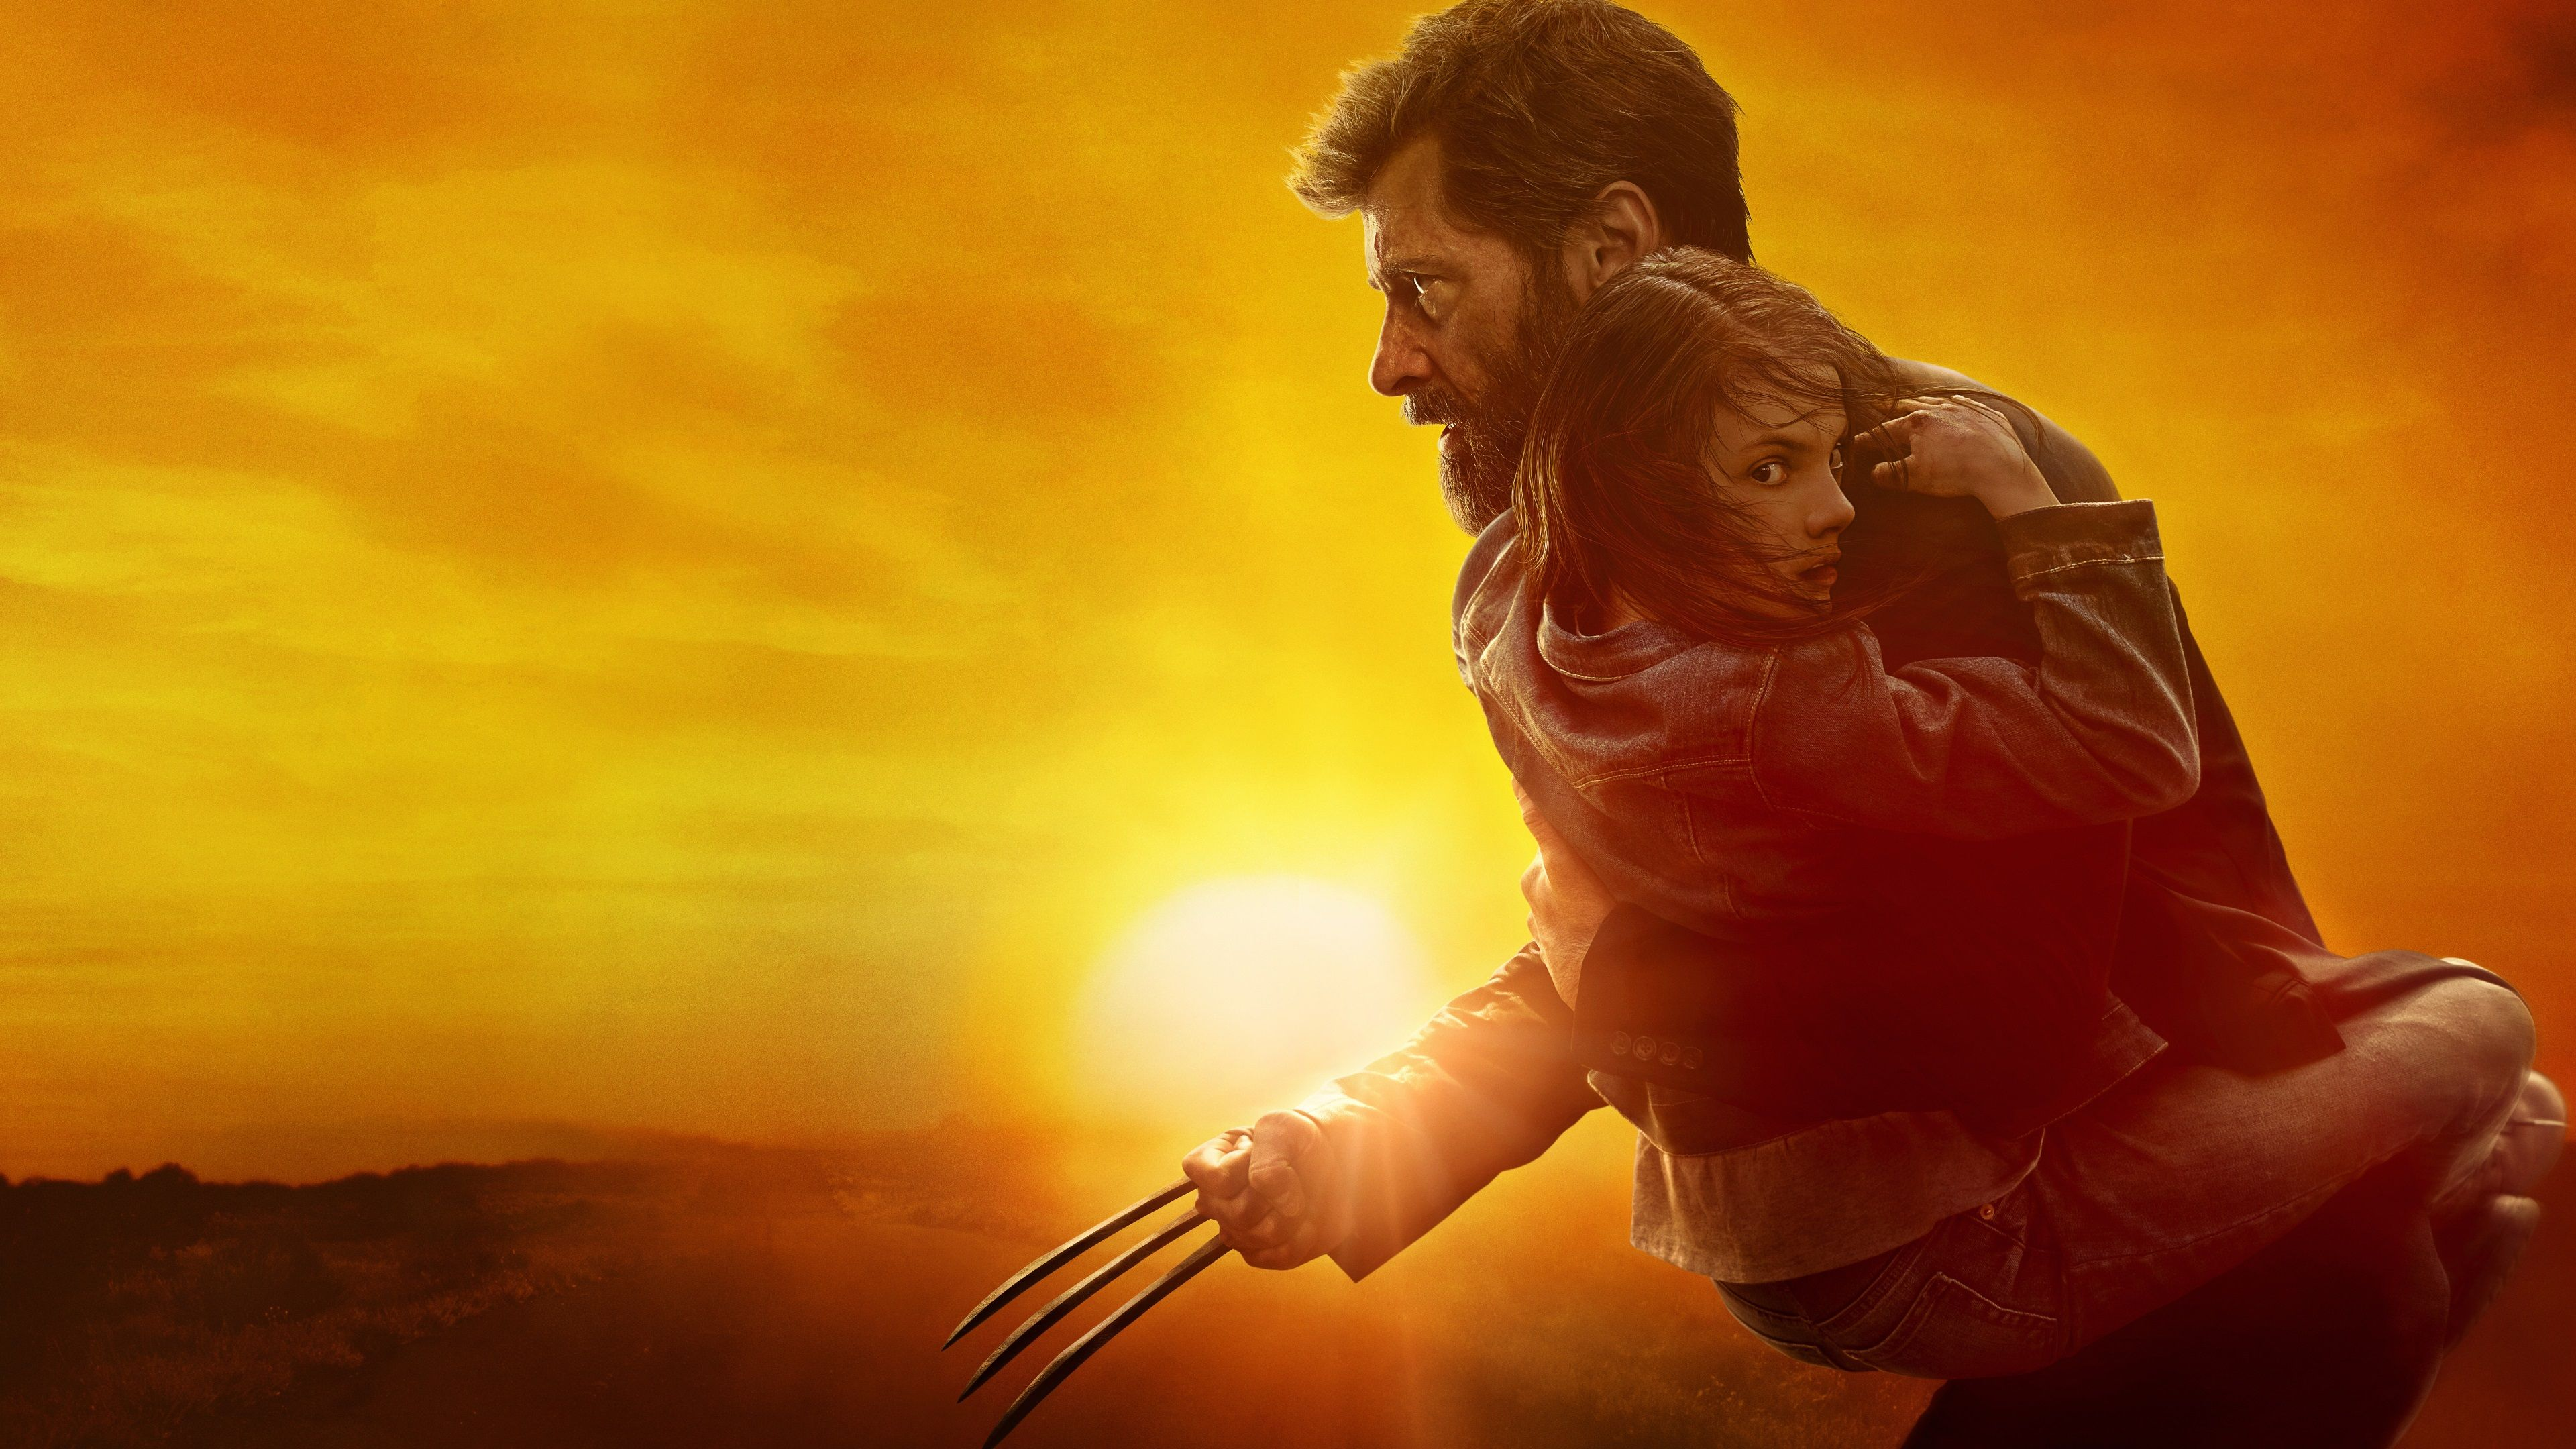 3840x2160 Logan 4k Wallpaper In Hd For Pc Logan Movies Movies Film Movie